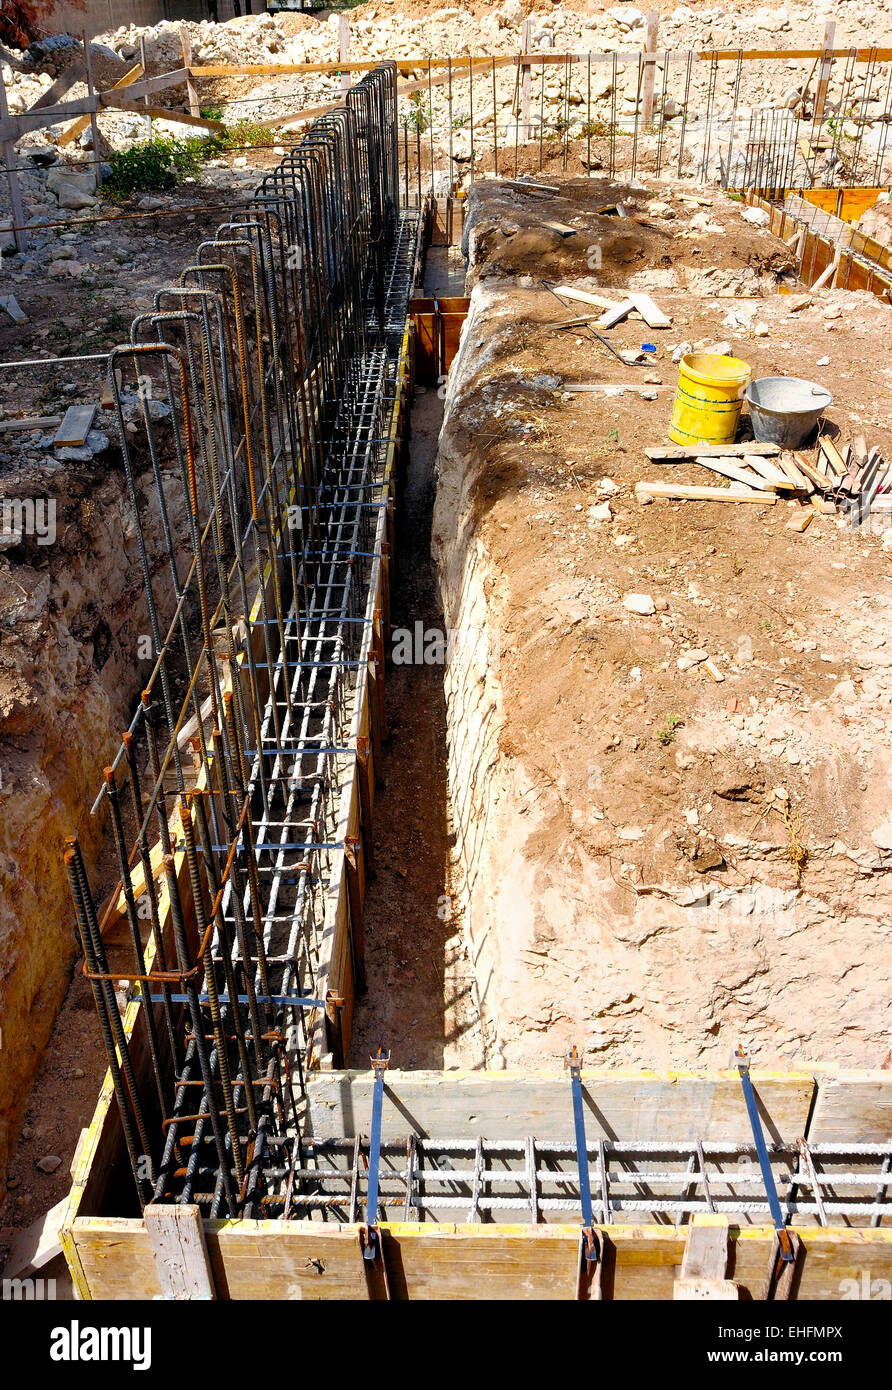 Wood formwork and reinforcing steel bars use in construction site